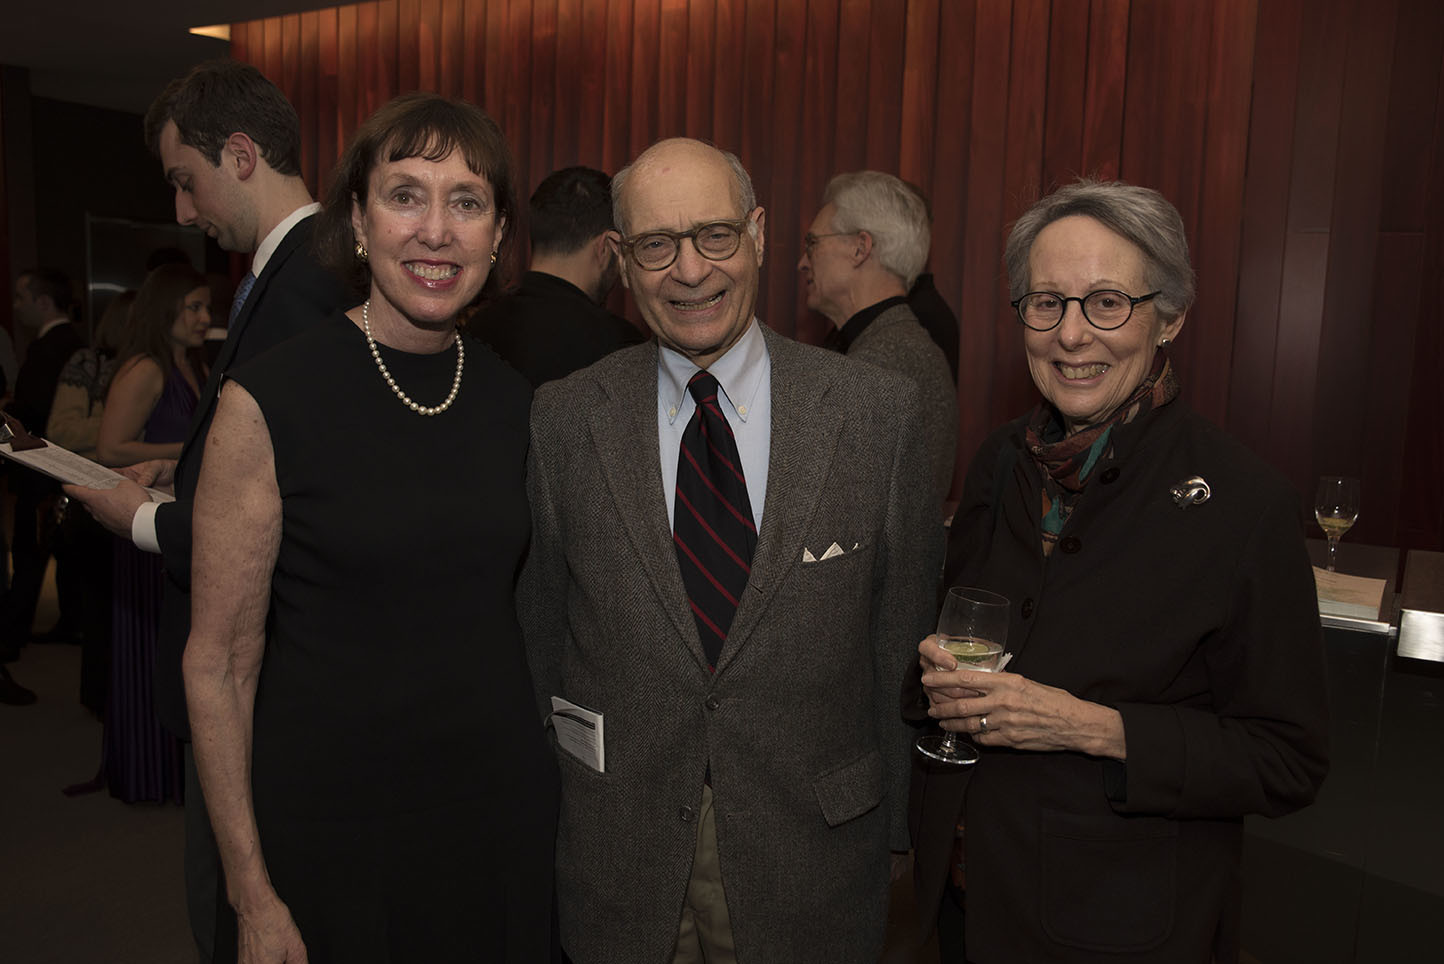 Executive Director Suzanne Davidson, James and Mary Ellen Rudolph